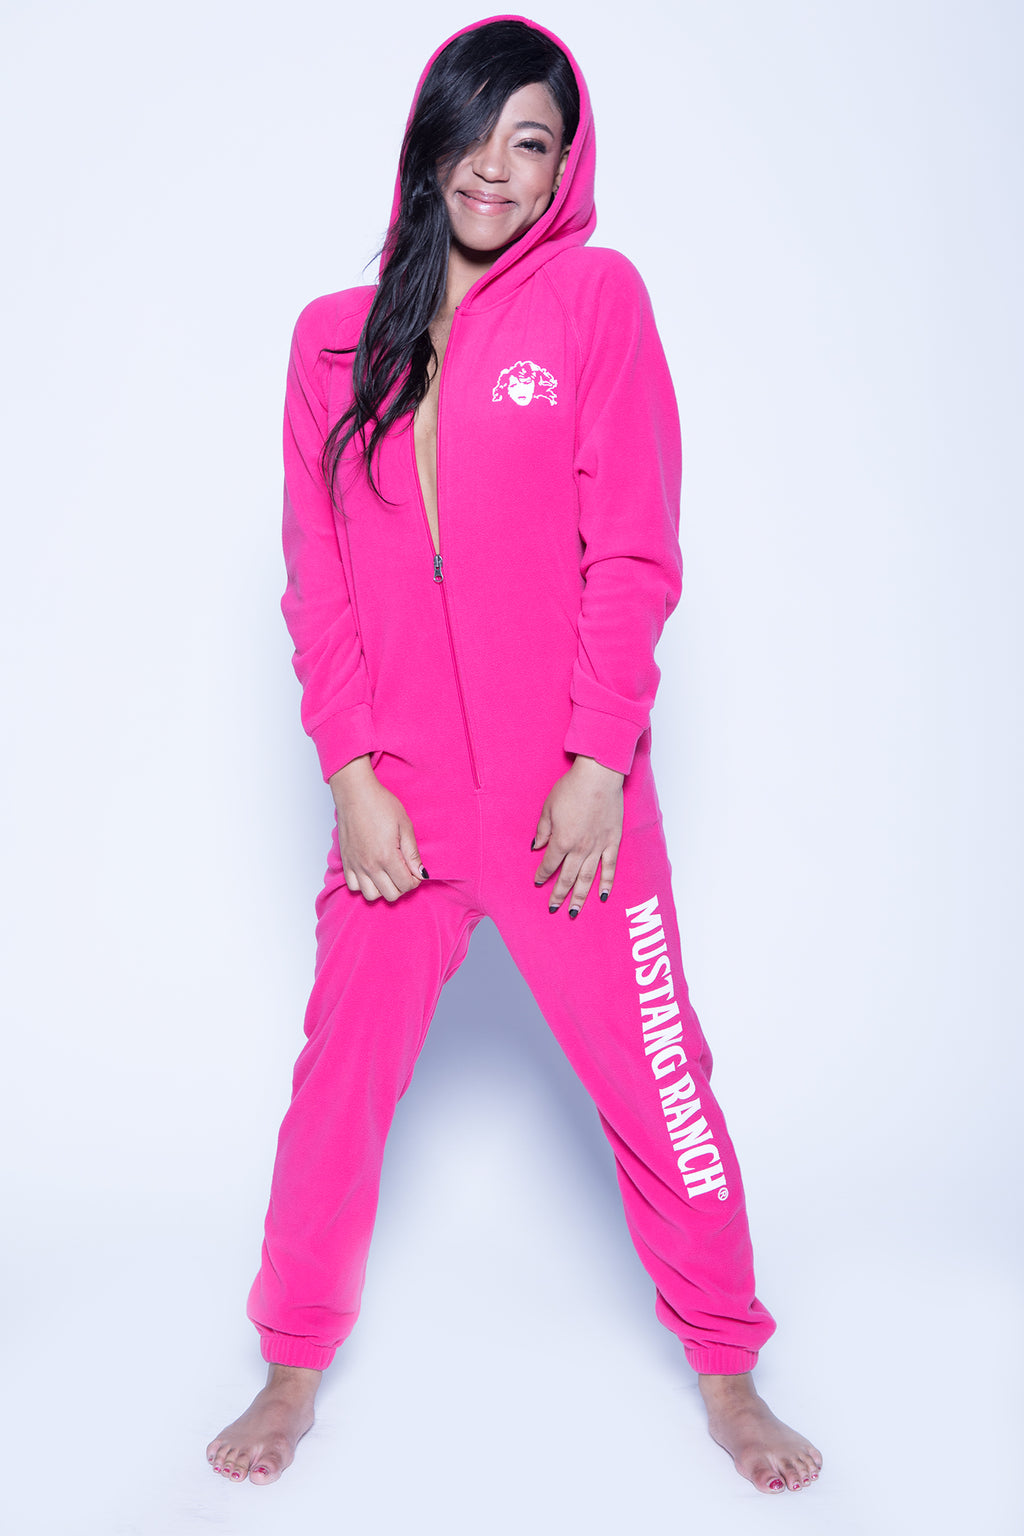 Women's Flannel Onesie Lounger - Black or Fuchsia